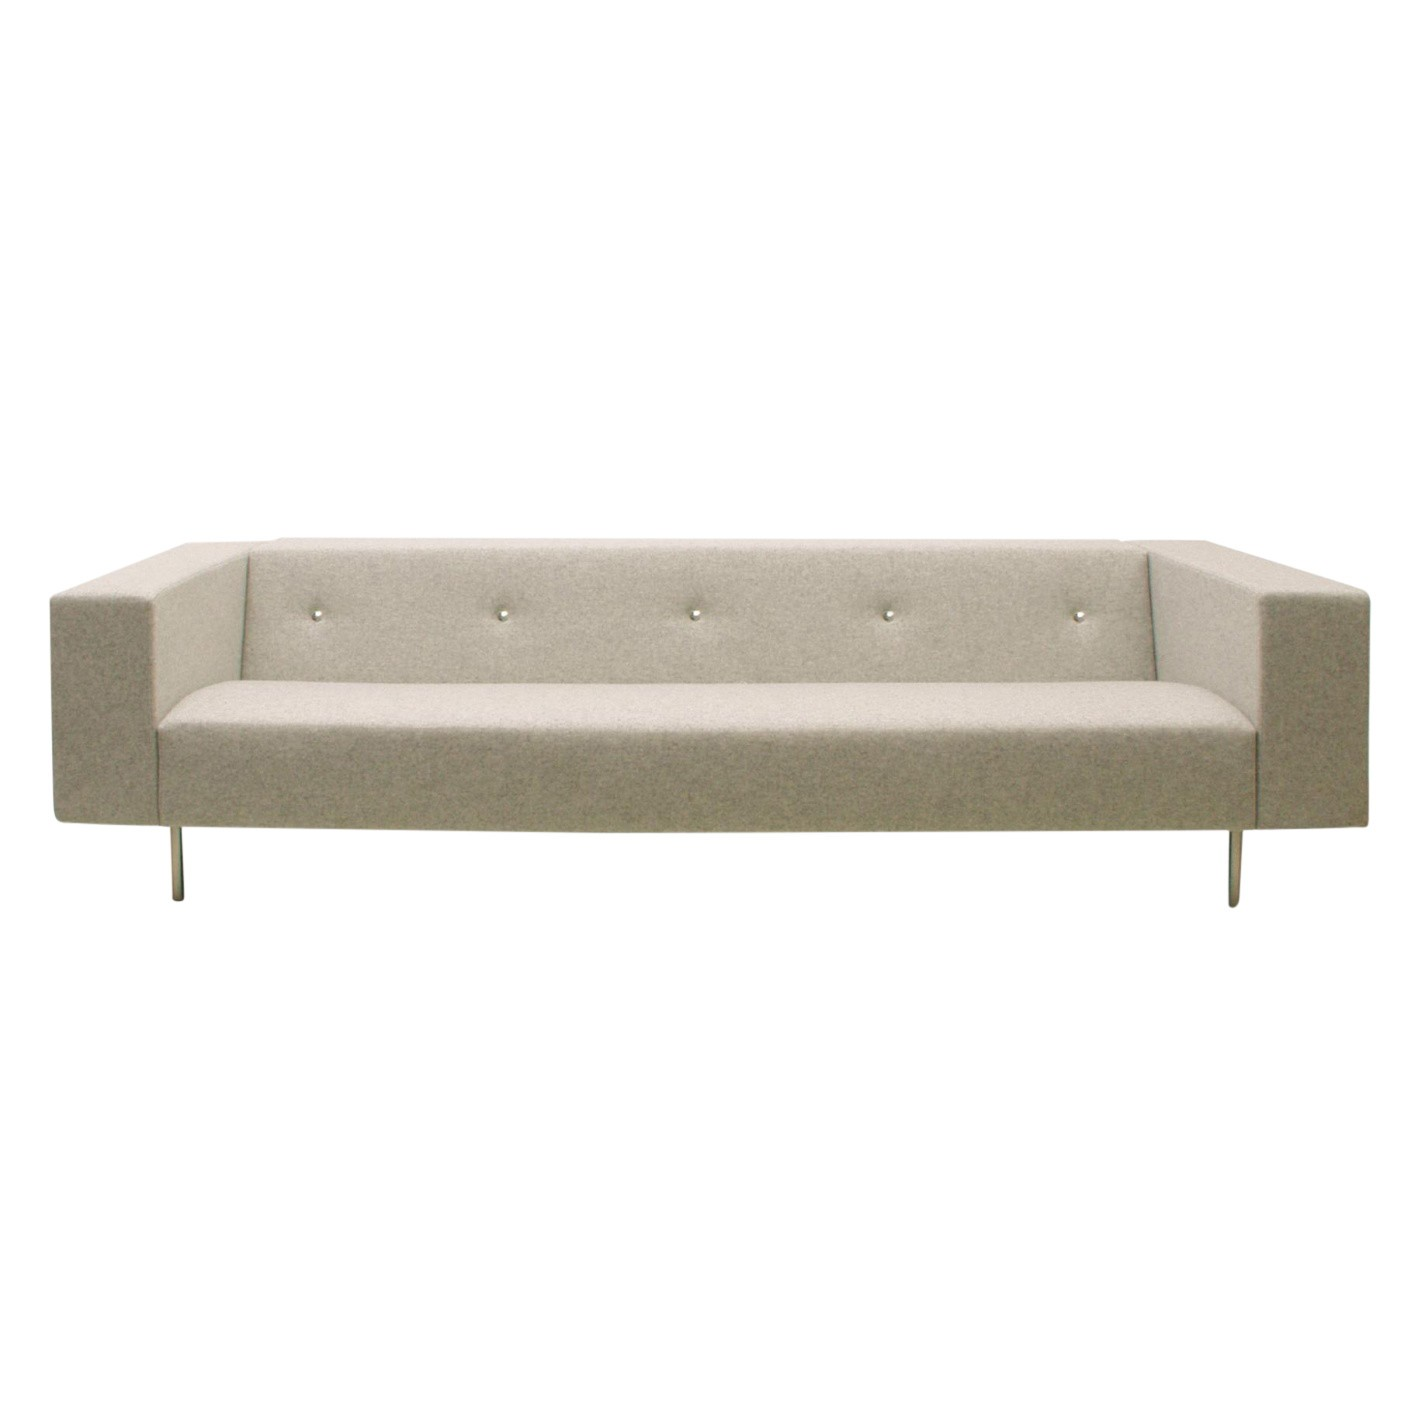 Moooi Bottoni 3 Seater Sofa